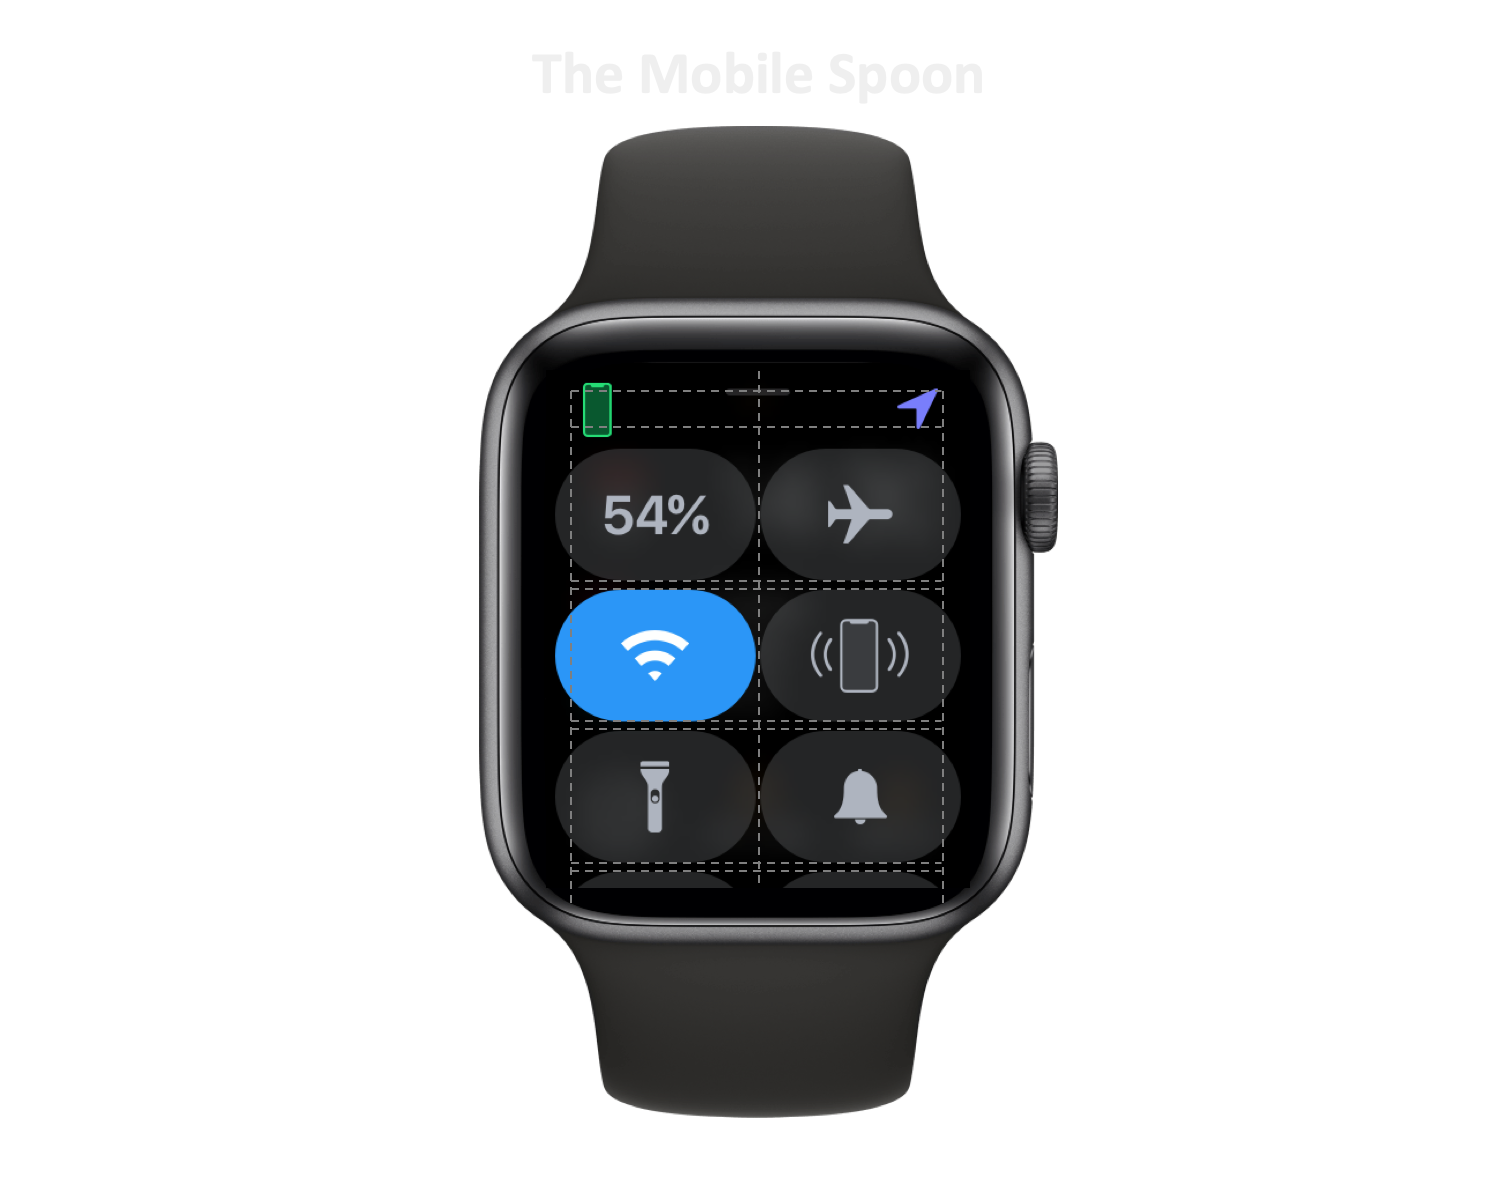 Apple Watch Control Center - current design issues